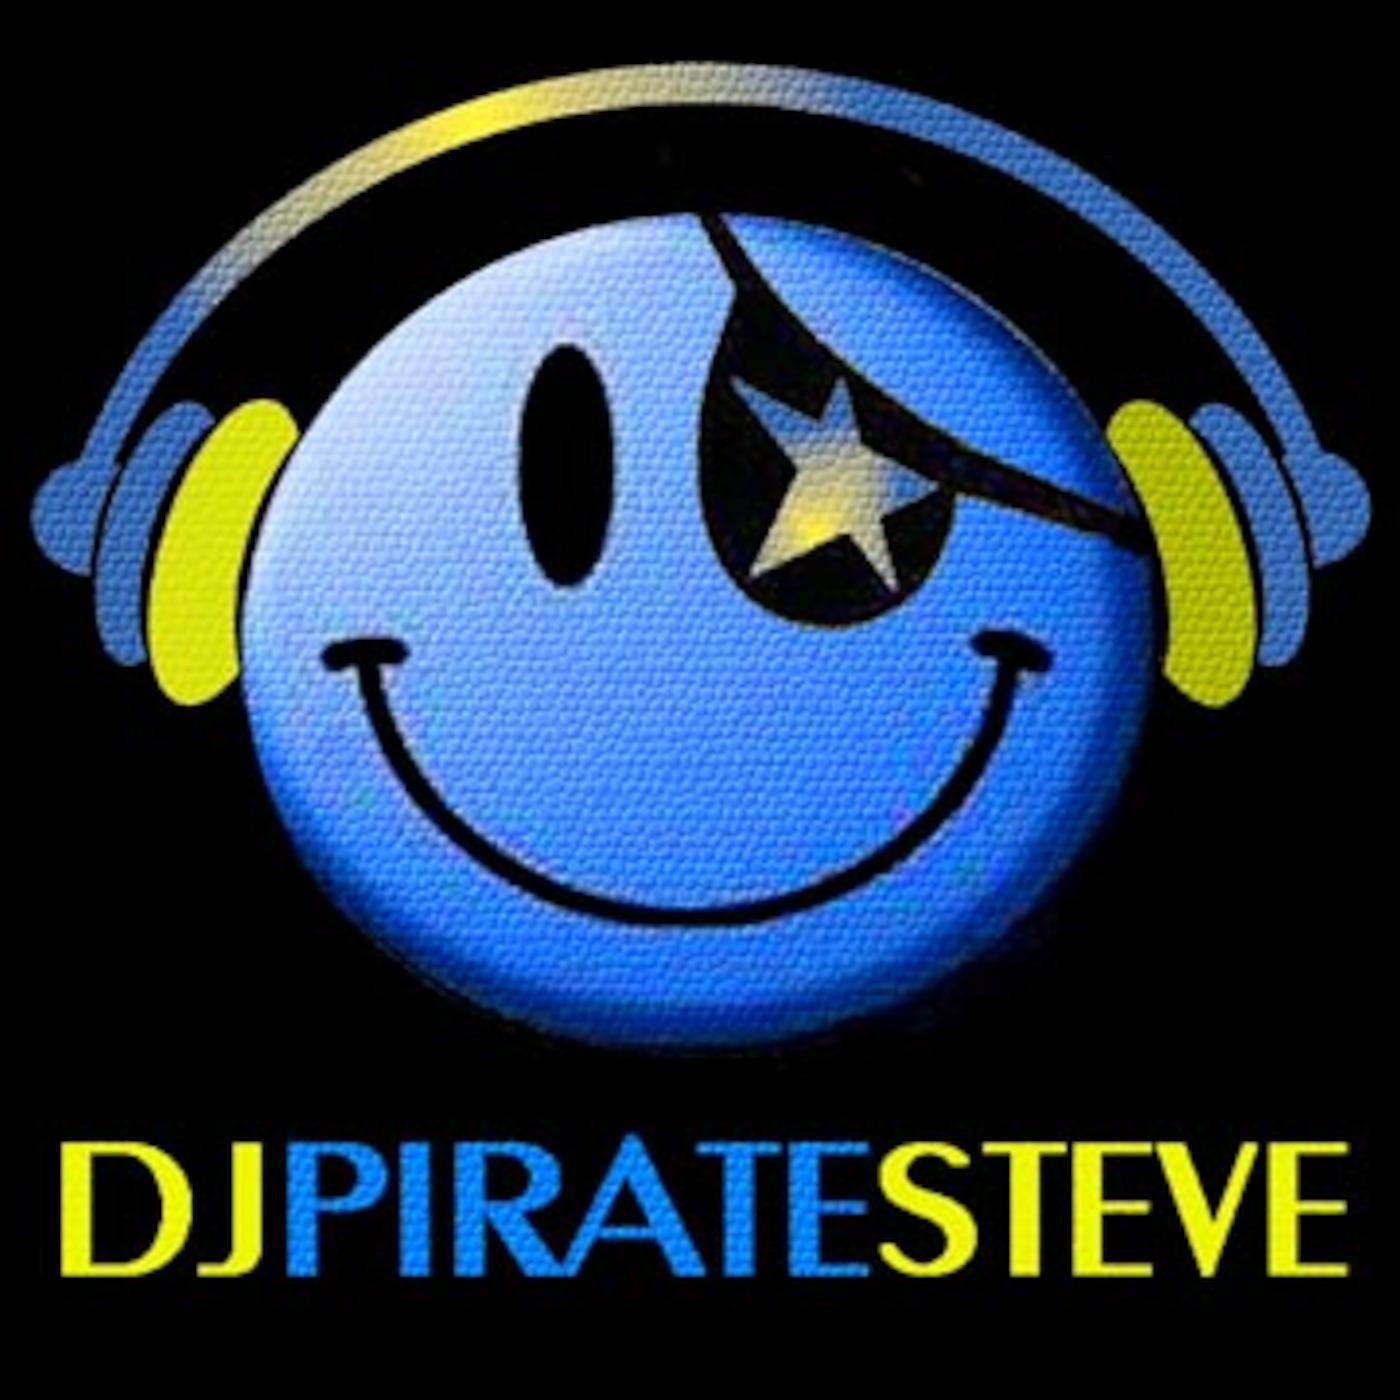 DJ PIRATE STEVE'S PODCAST